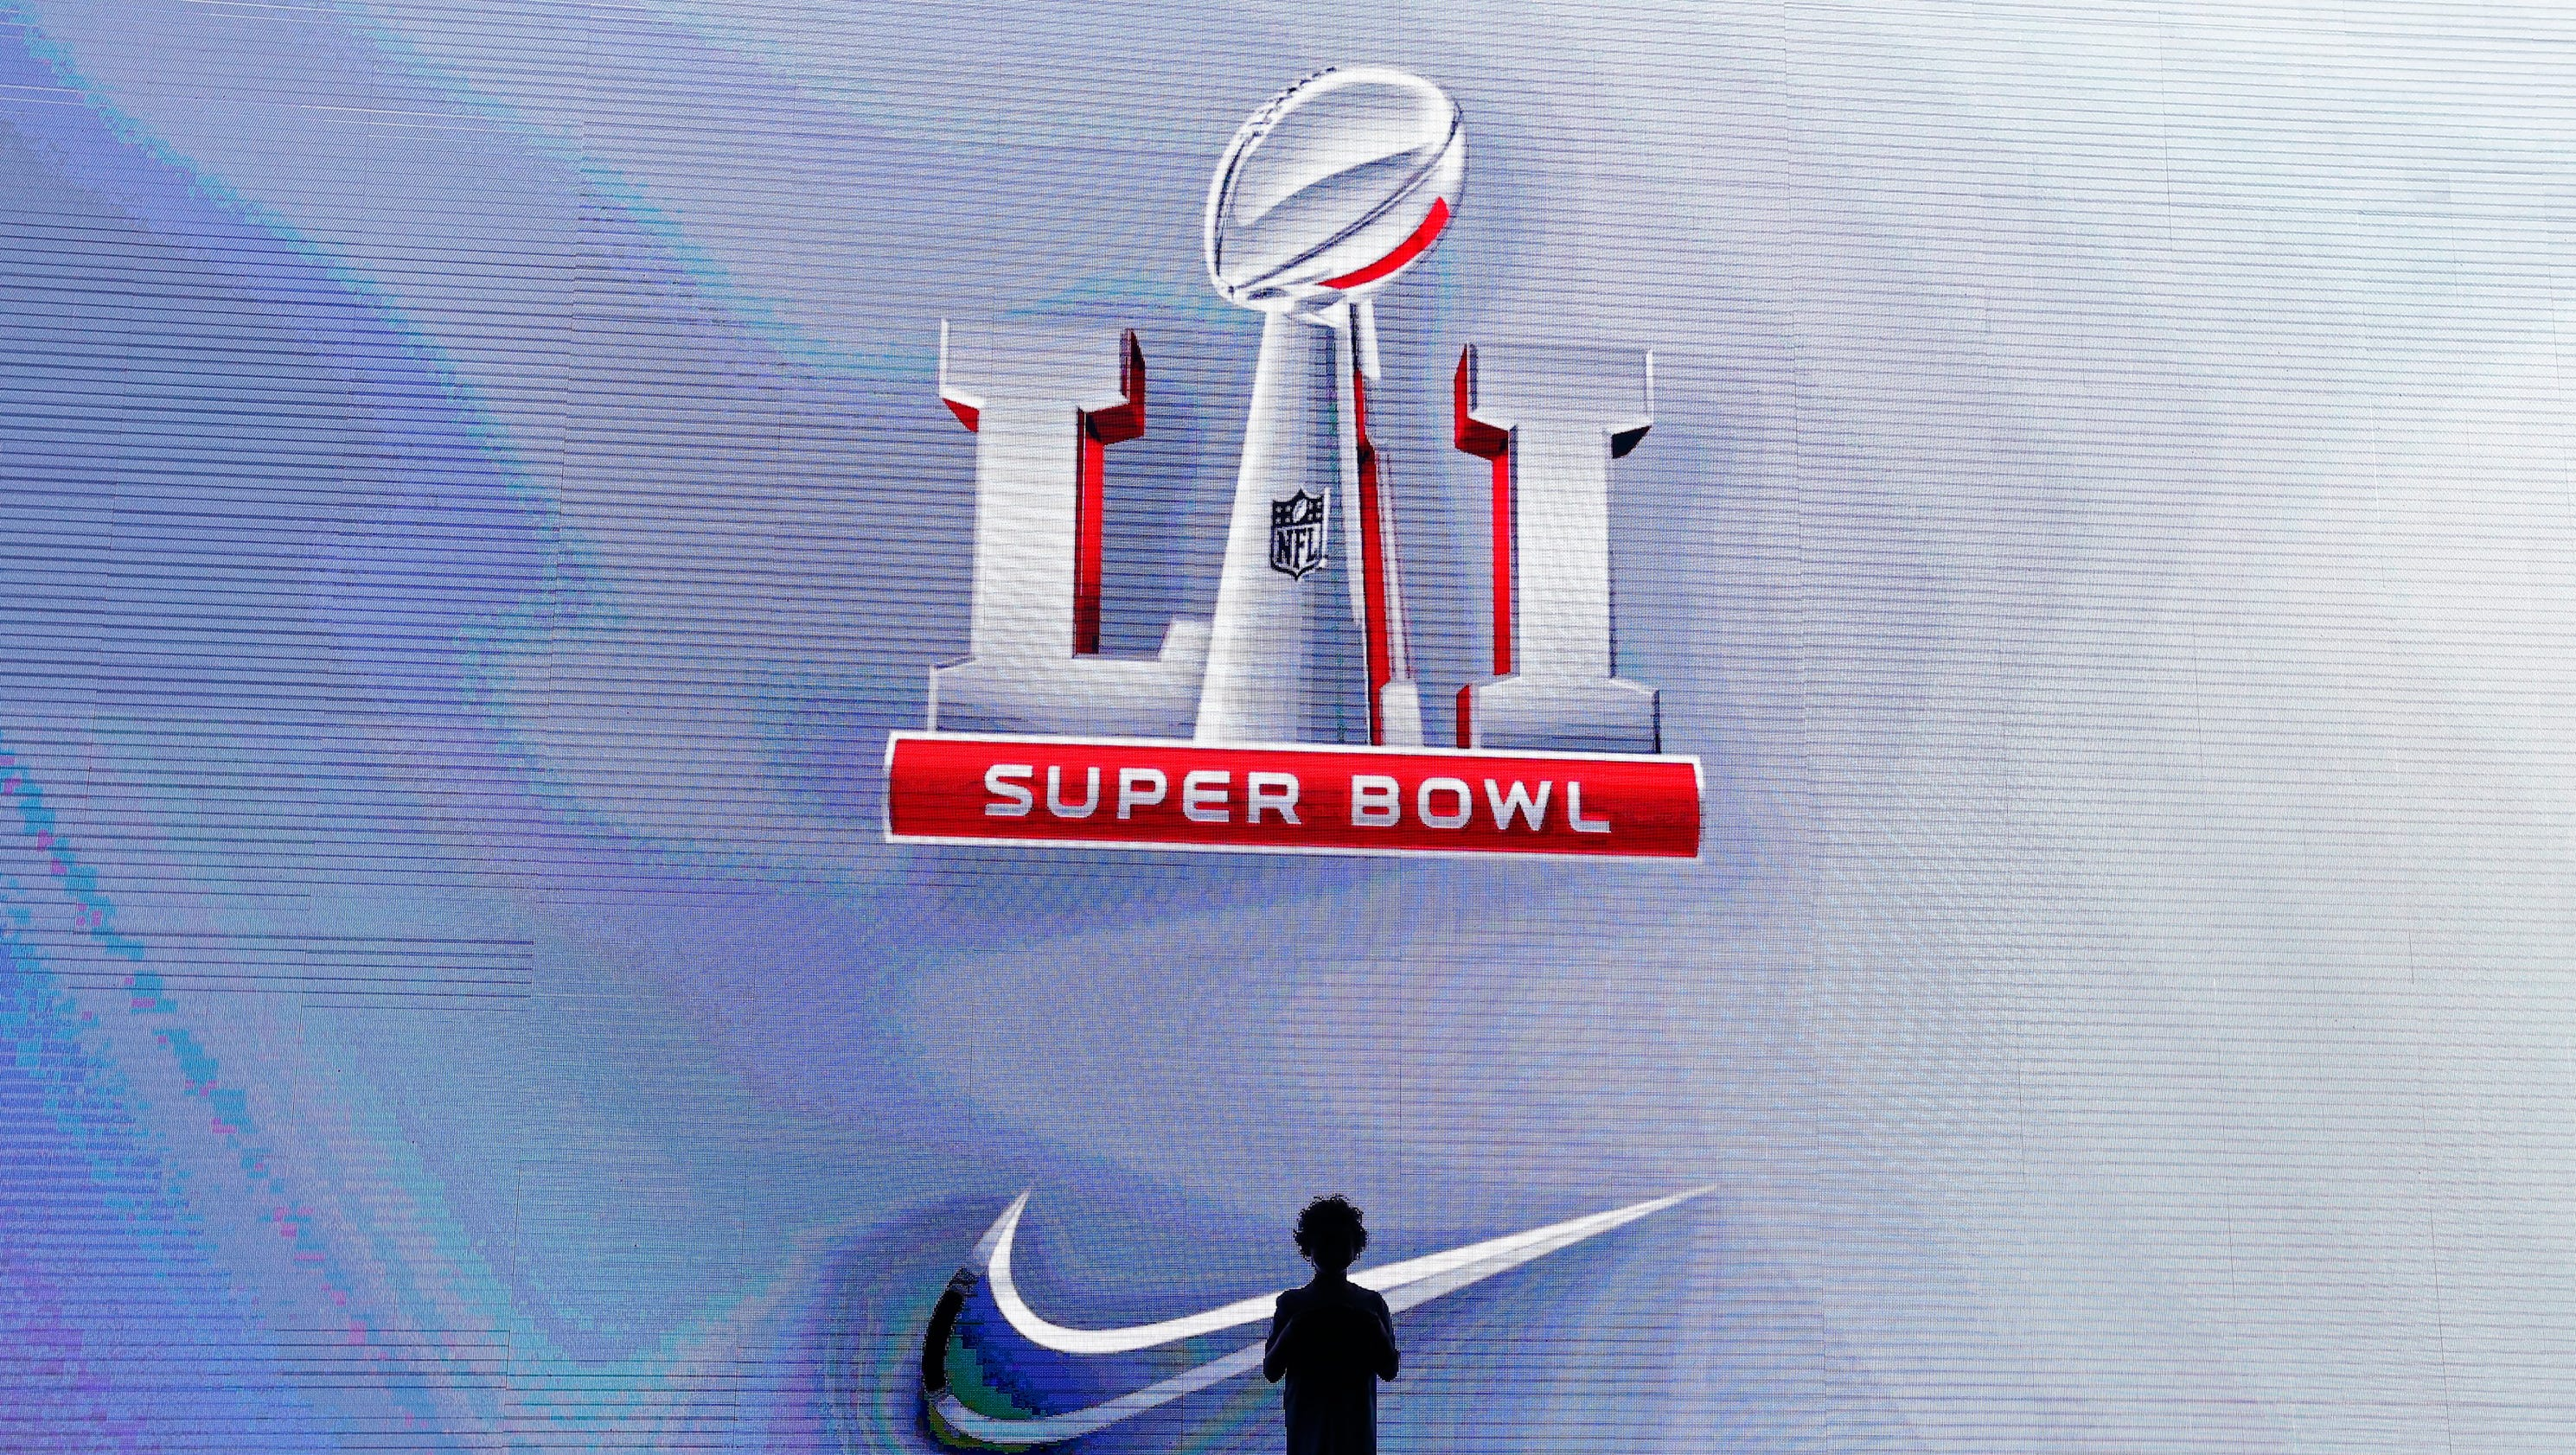 Date of super bowl in Melbourne